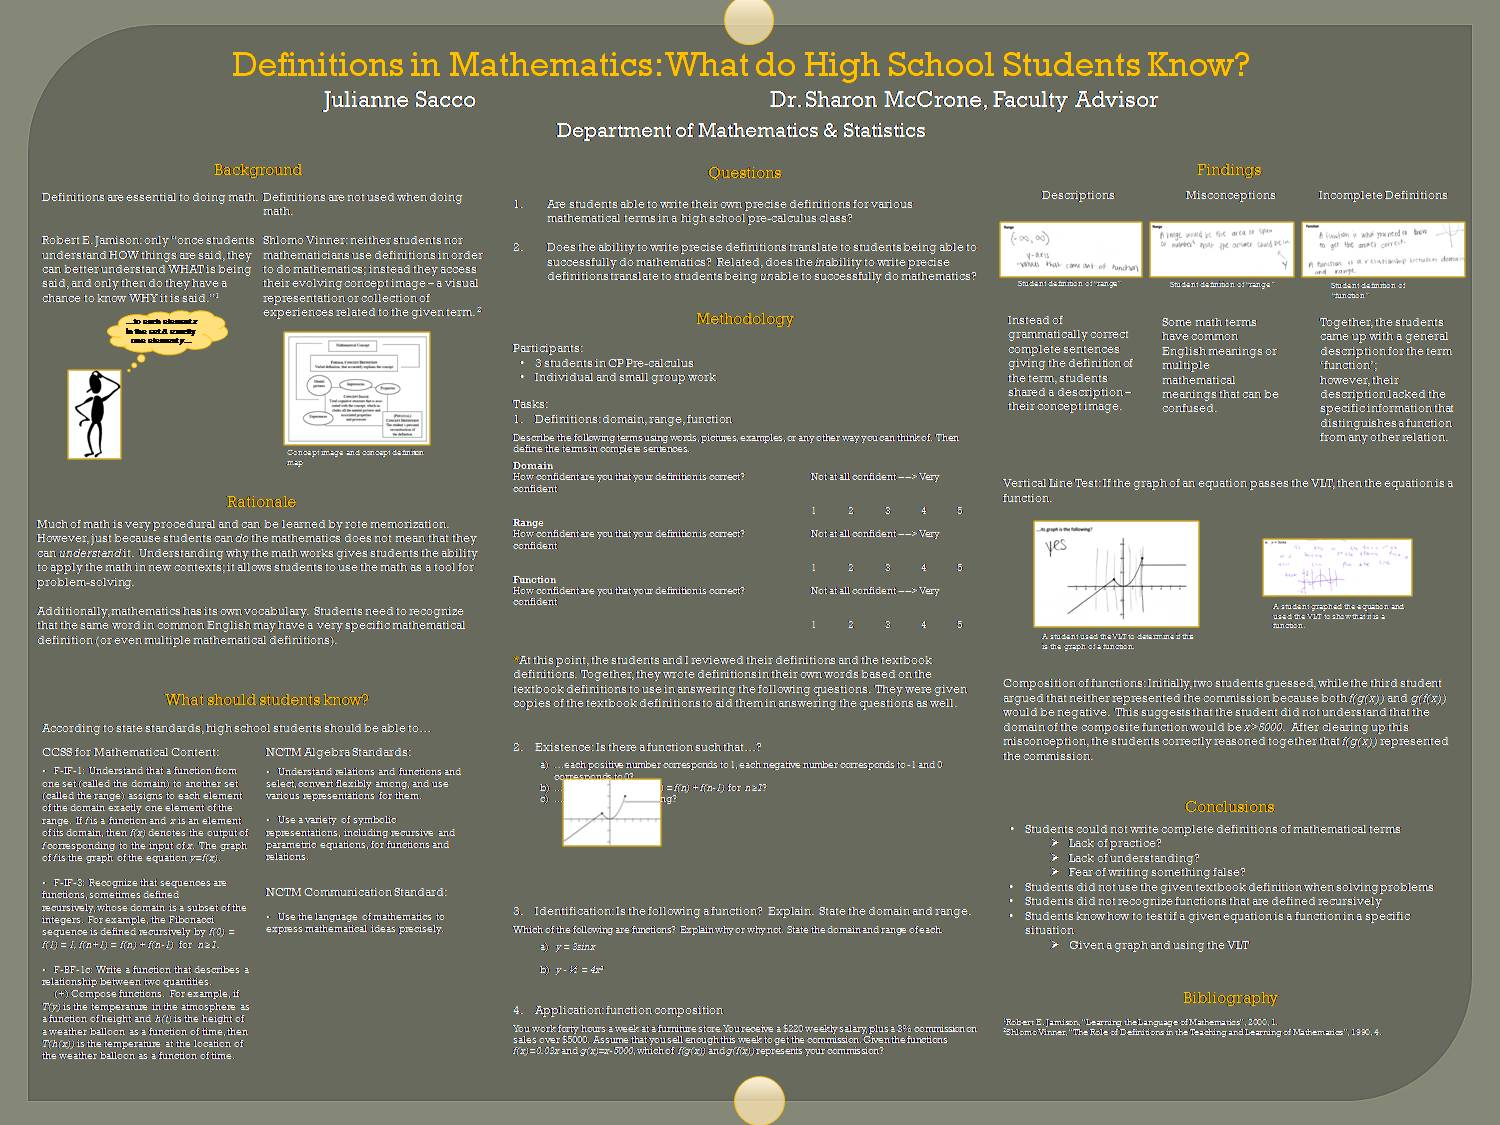 Definitions In Mathematics: What Do High School Students Know? by jmn597